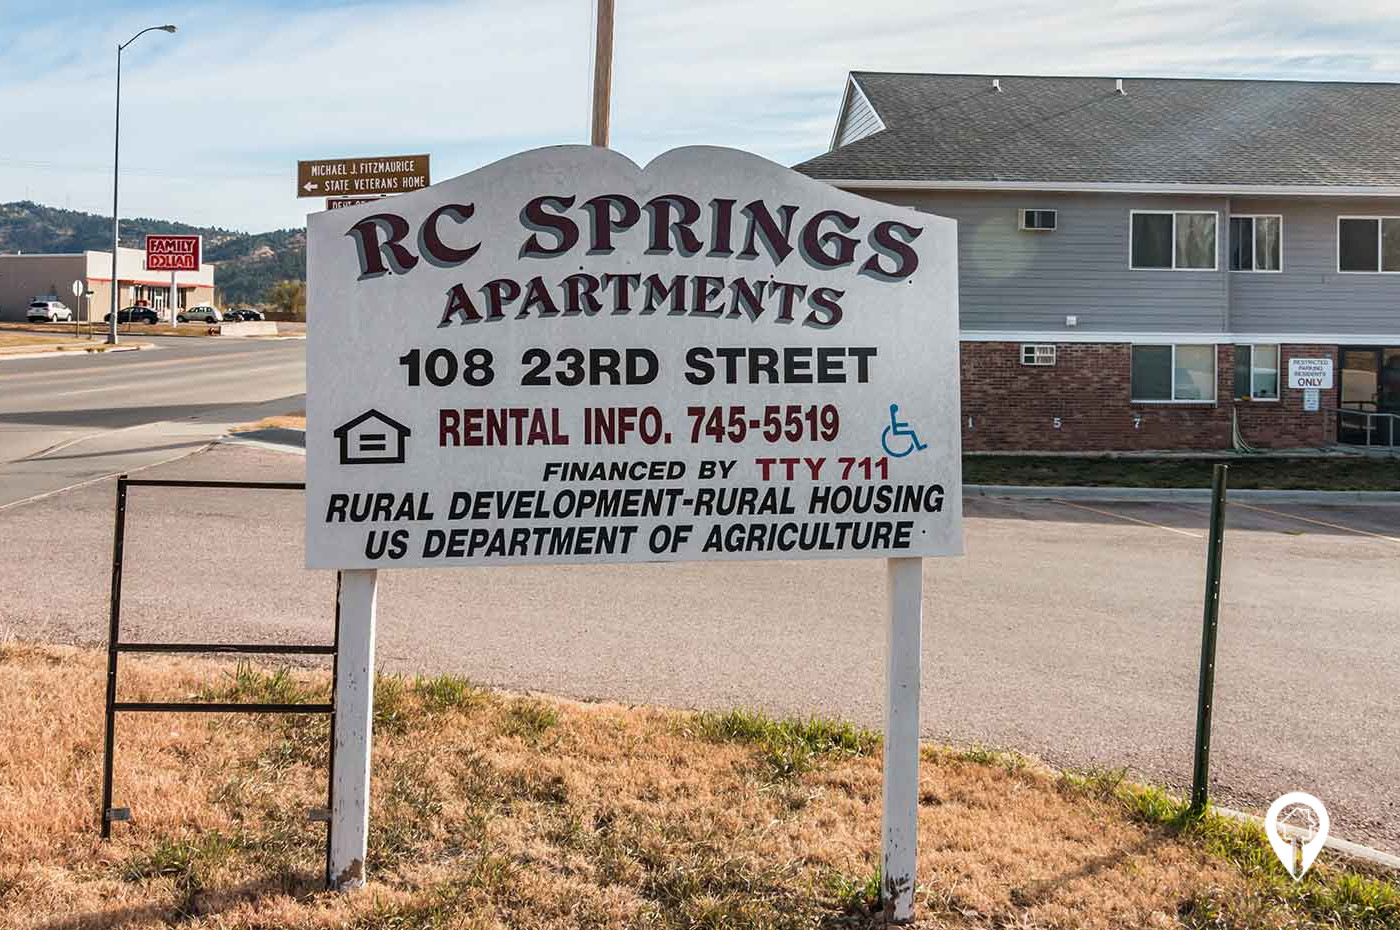 RC Springs Apartments